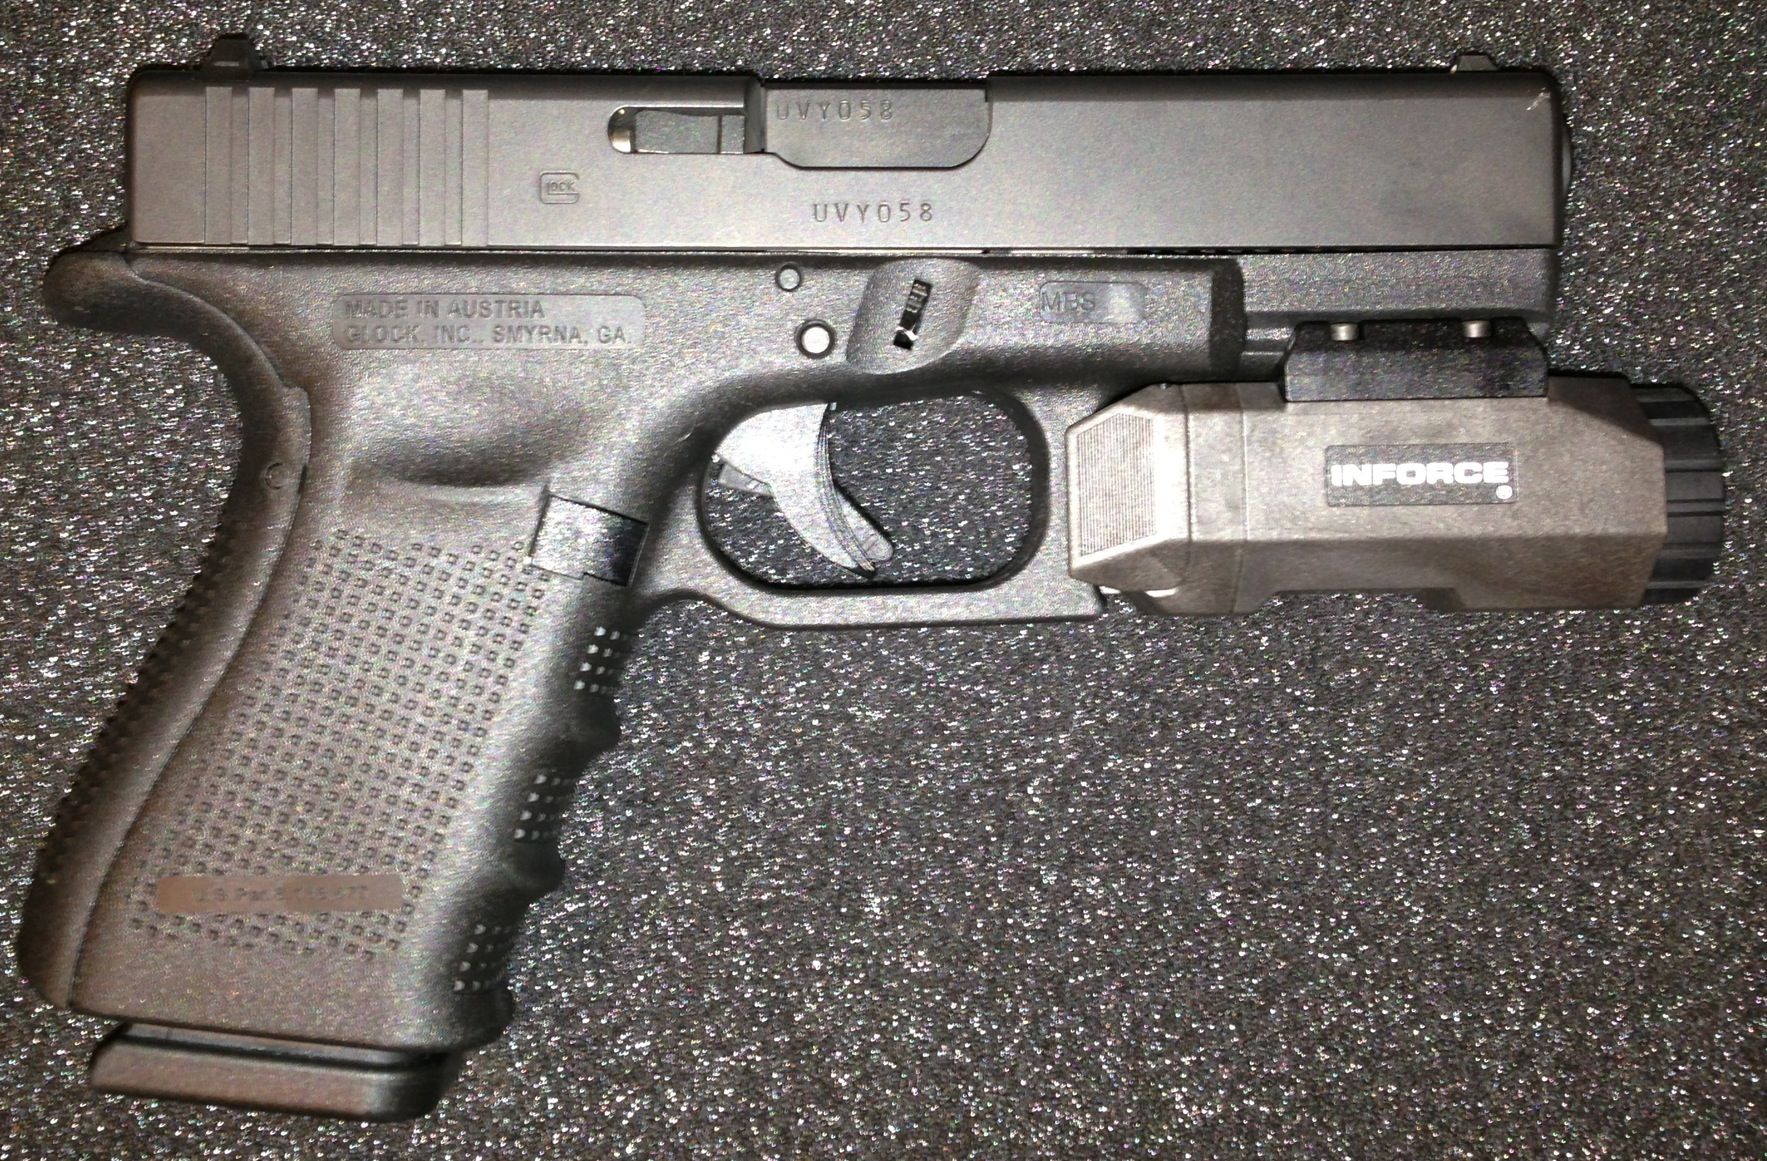 My Gen4 Glock 19 with an Inforce APL, beavertail back-strap ...